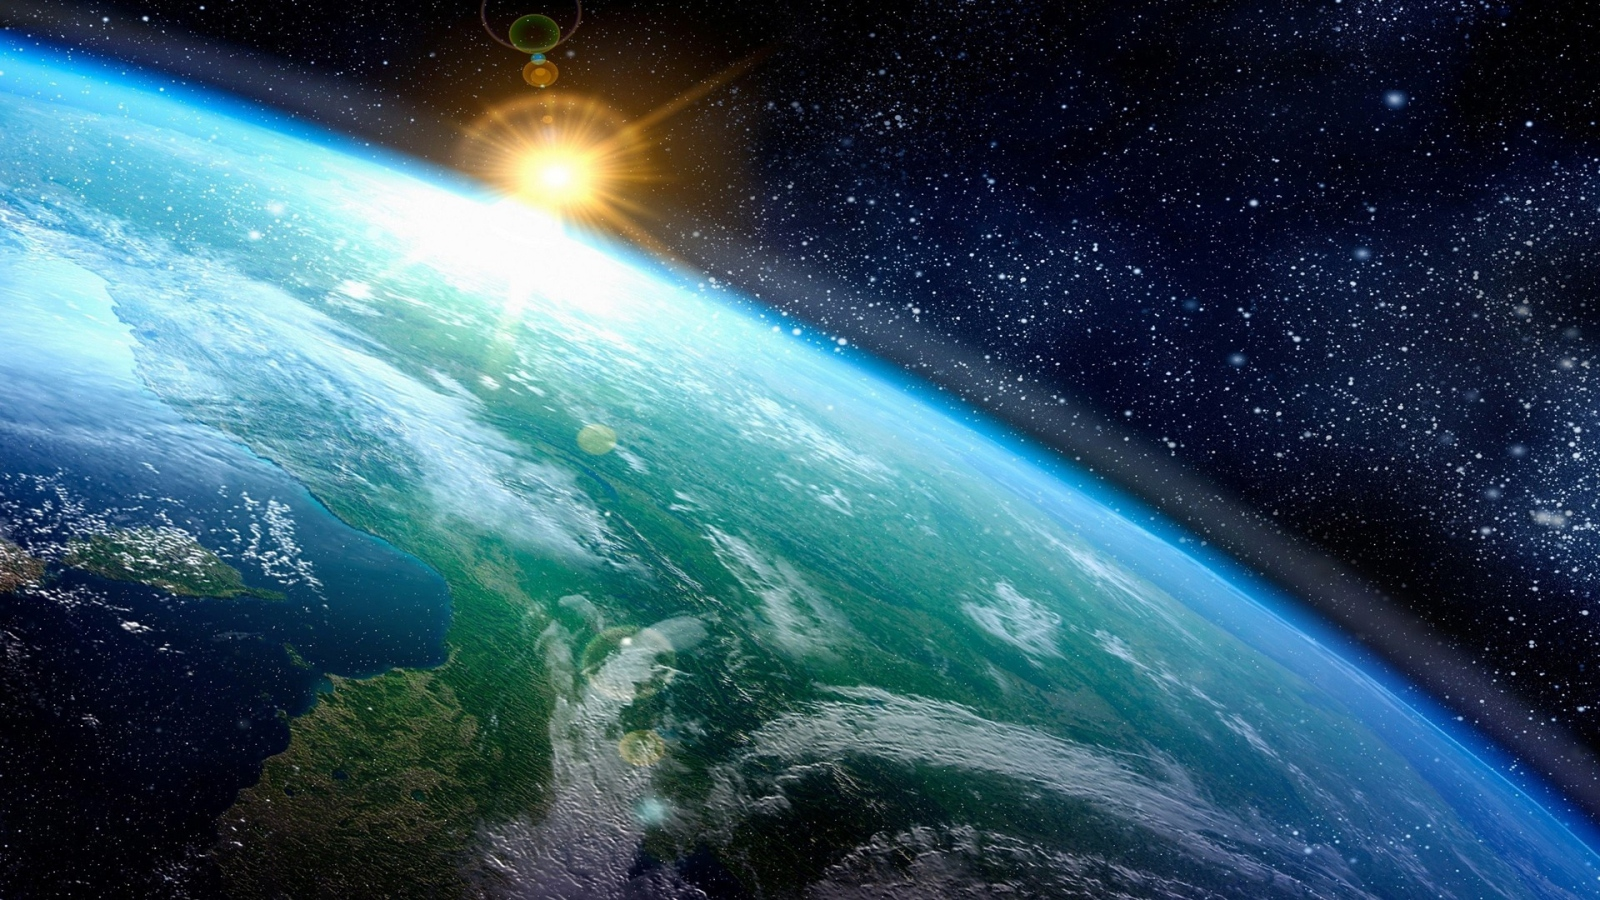 Earth Outer Space From Earth 1600x900 Wallpaper Teahub Io